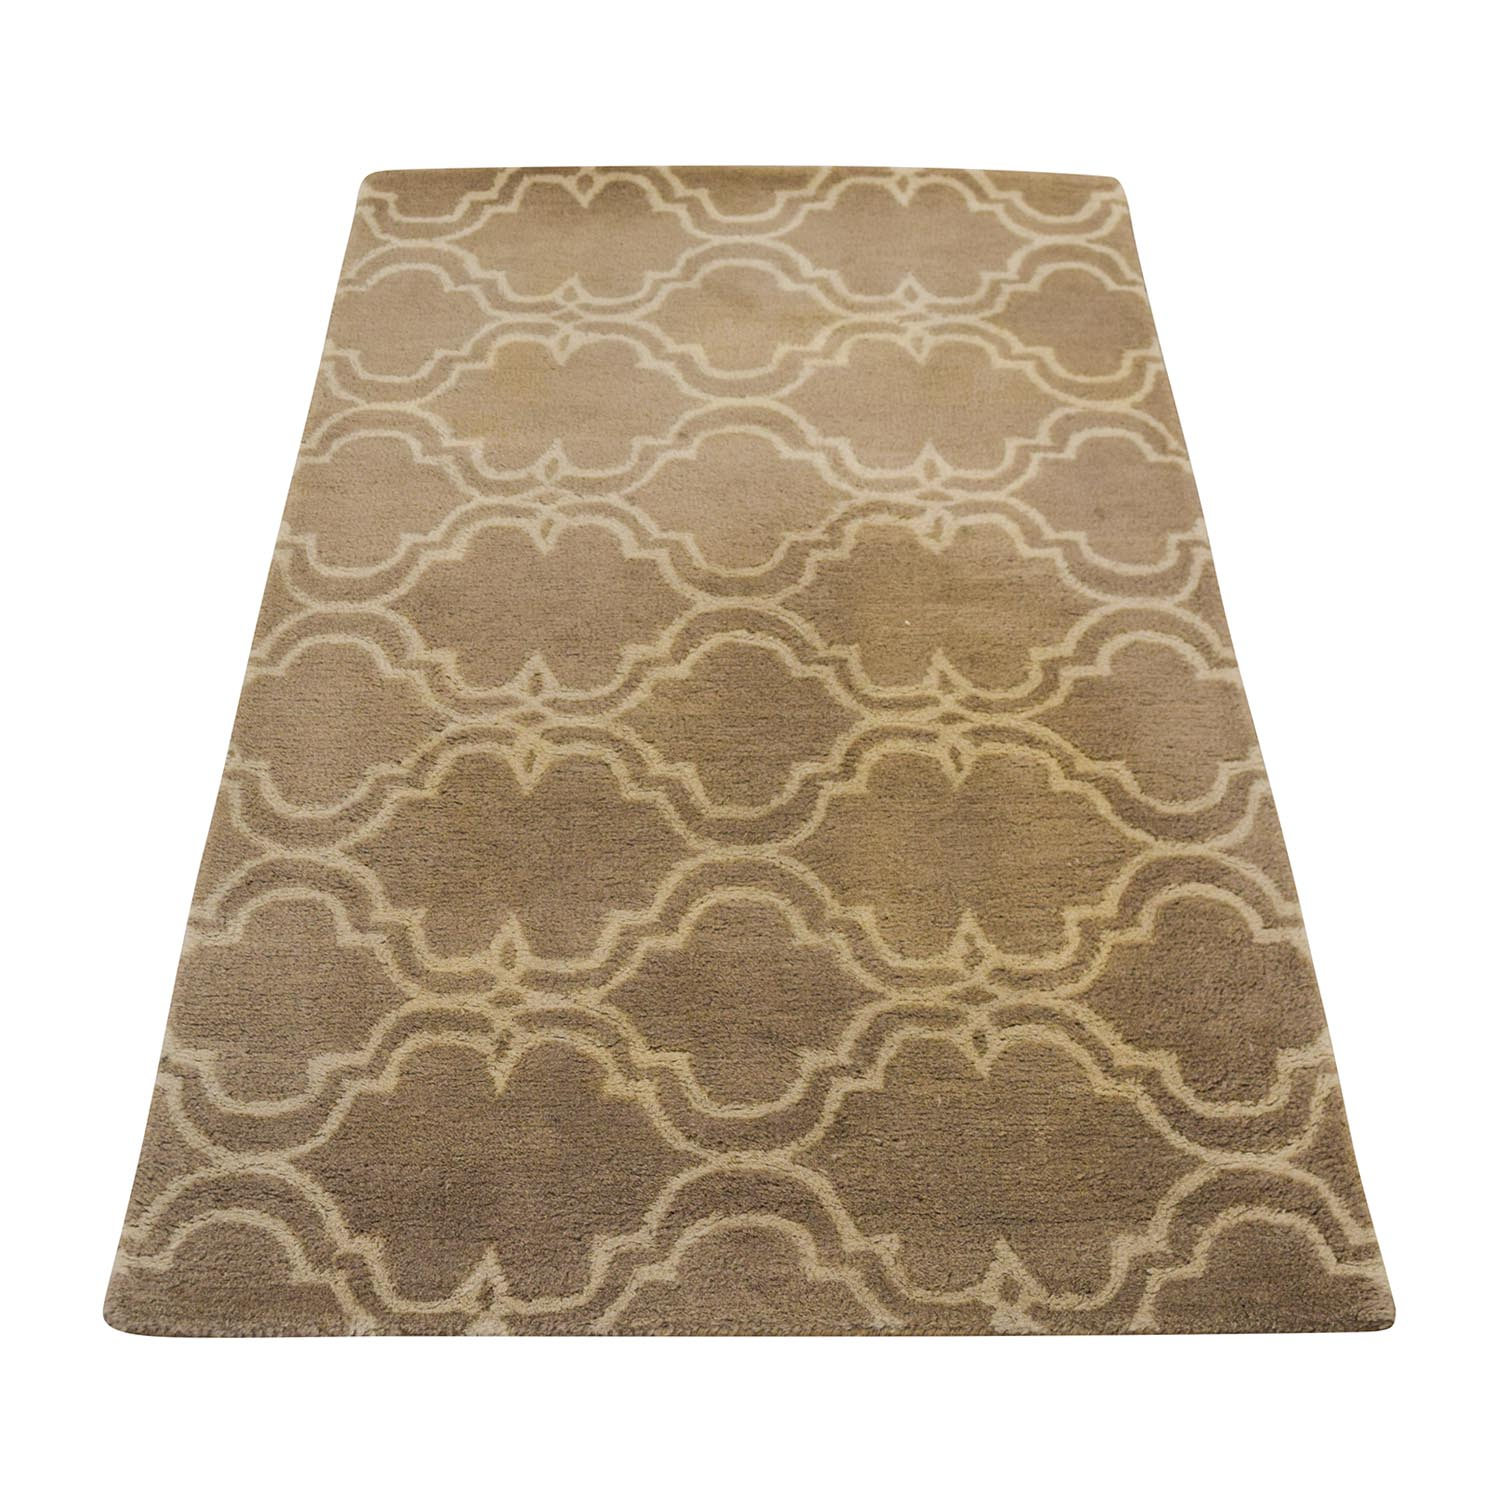 buy Pottery Barn Scroll Tile Wool Grey and White Rug Pottery Barn